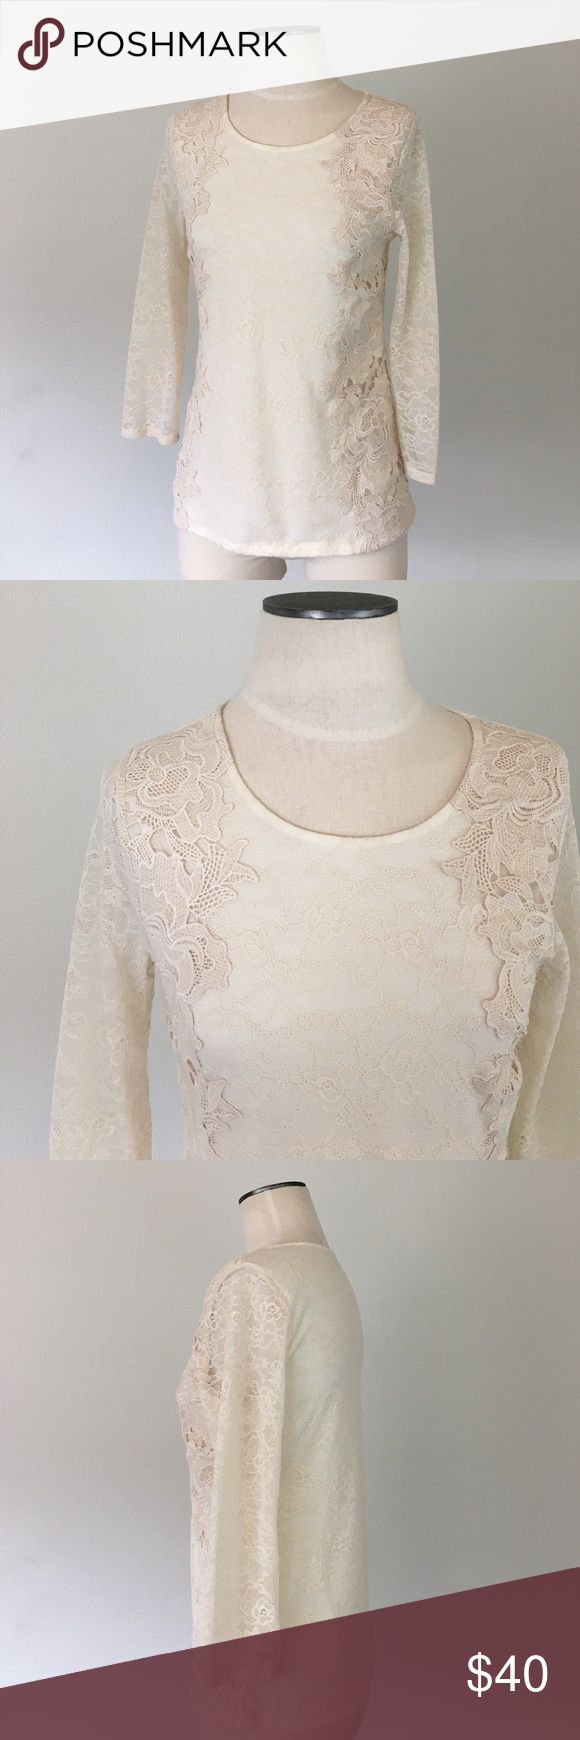 """Anthropologie-Sunday in Brooklyn Cream Lace Top S Anthropologie-Sunday in Brooklyn Cream Lace Top S. Gorgeous cream lace, body is lined (sleeves are not). There's a crochet floral overlay on the sides of the front. Excellent condition. 25"""" from shoulder to hem; 17"""" from armpit-armpit. Anthropologie Tops"""